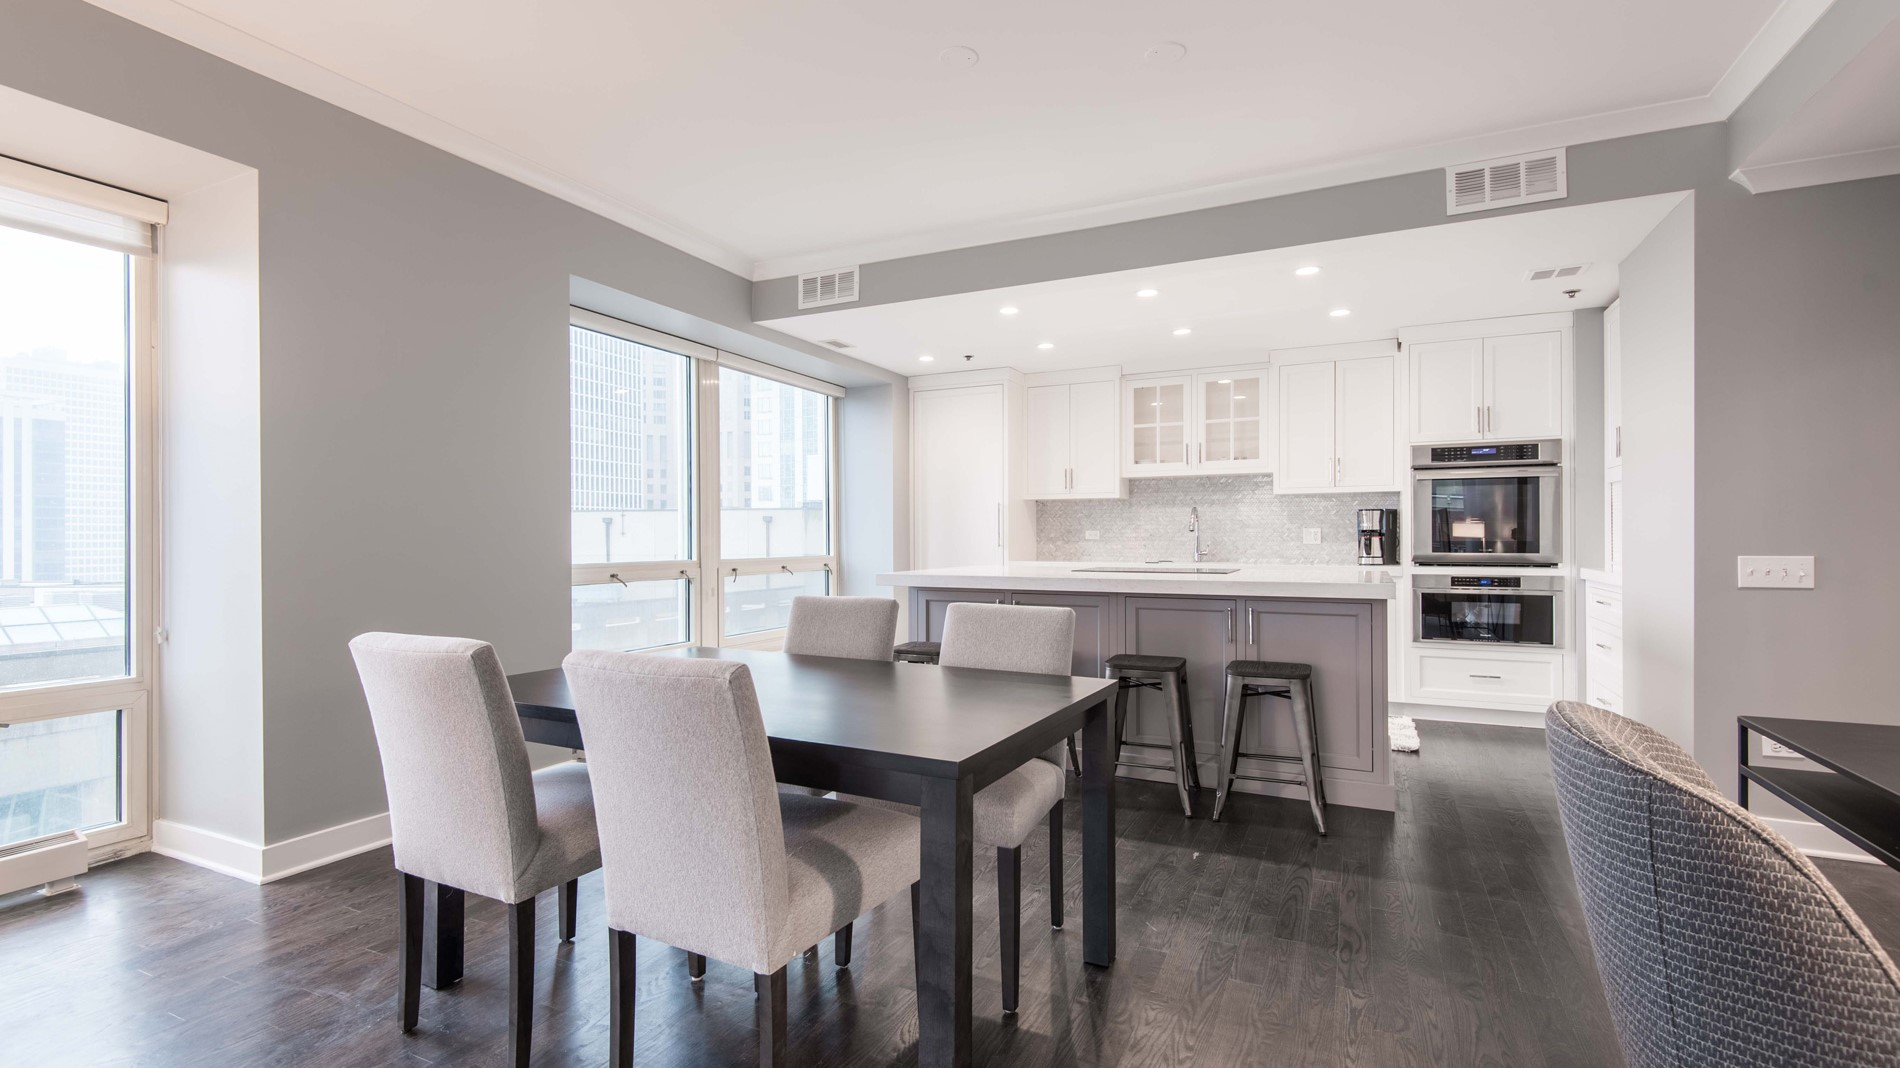 Using a Condo Home Inspection Checklist Before Moving